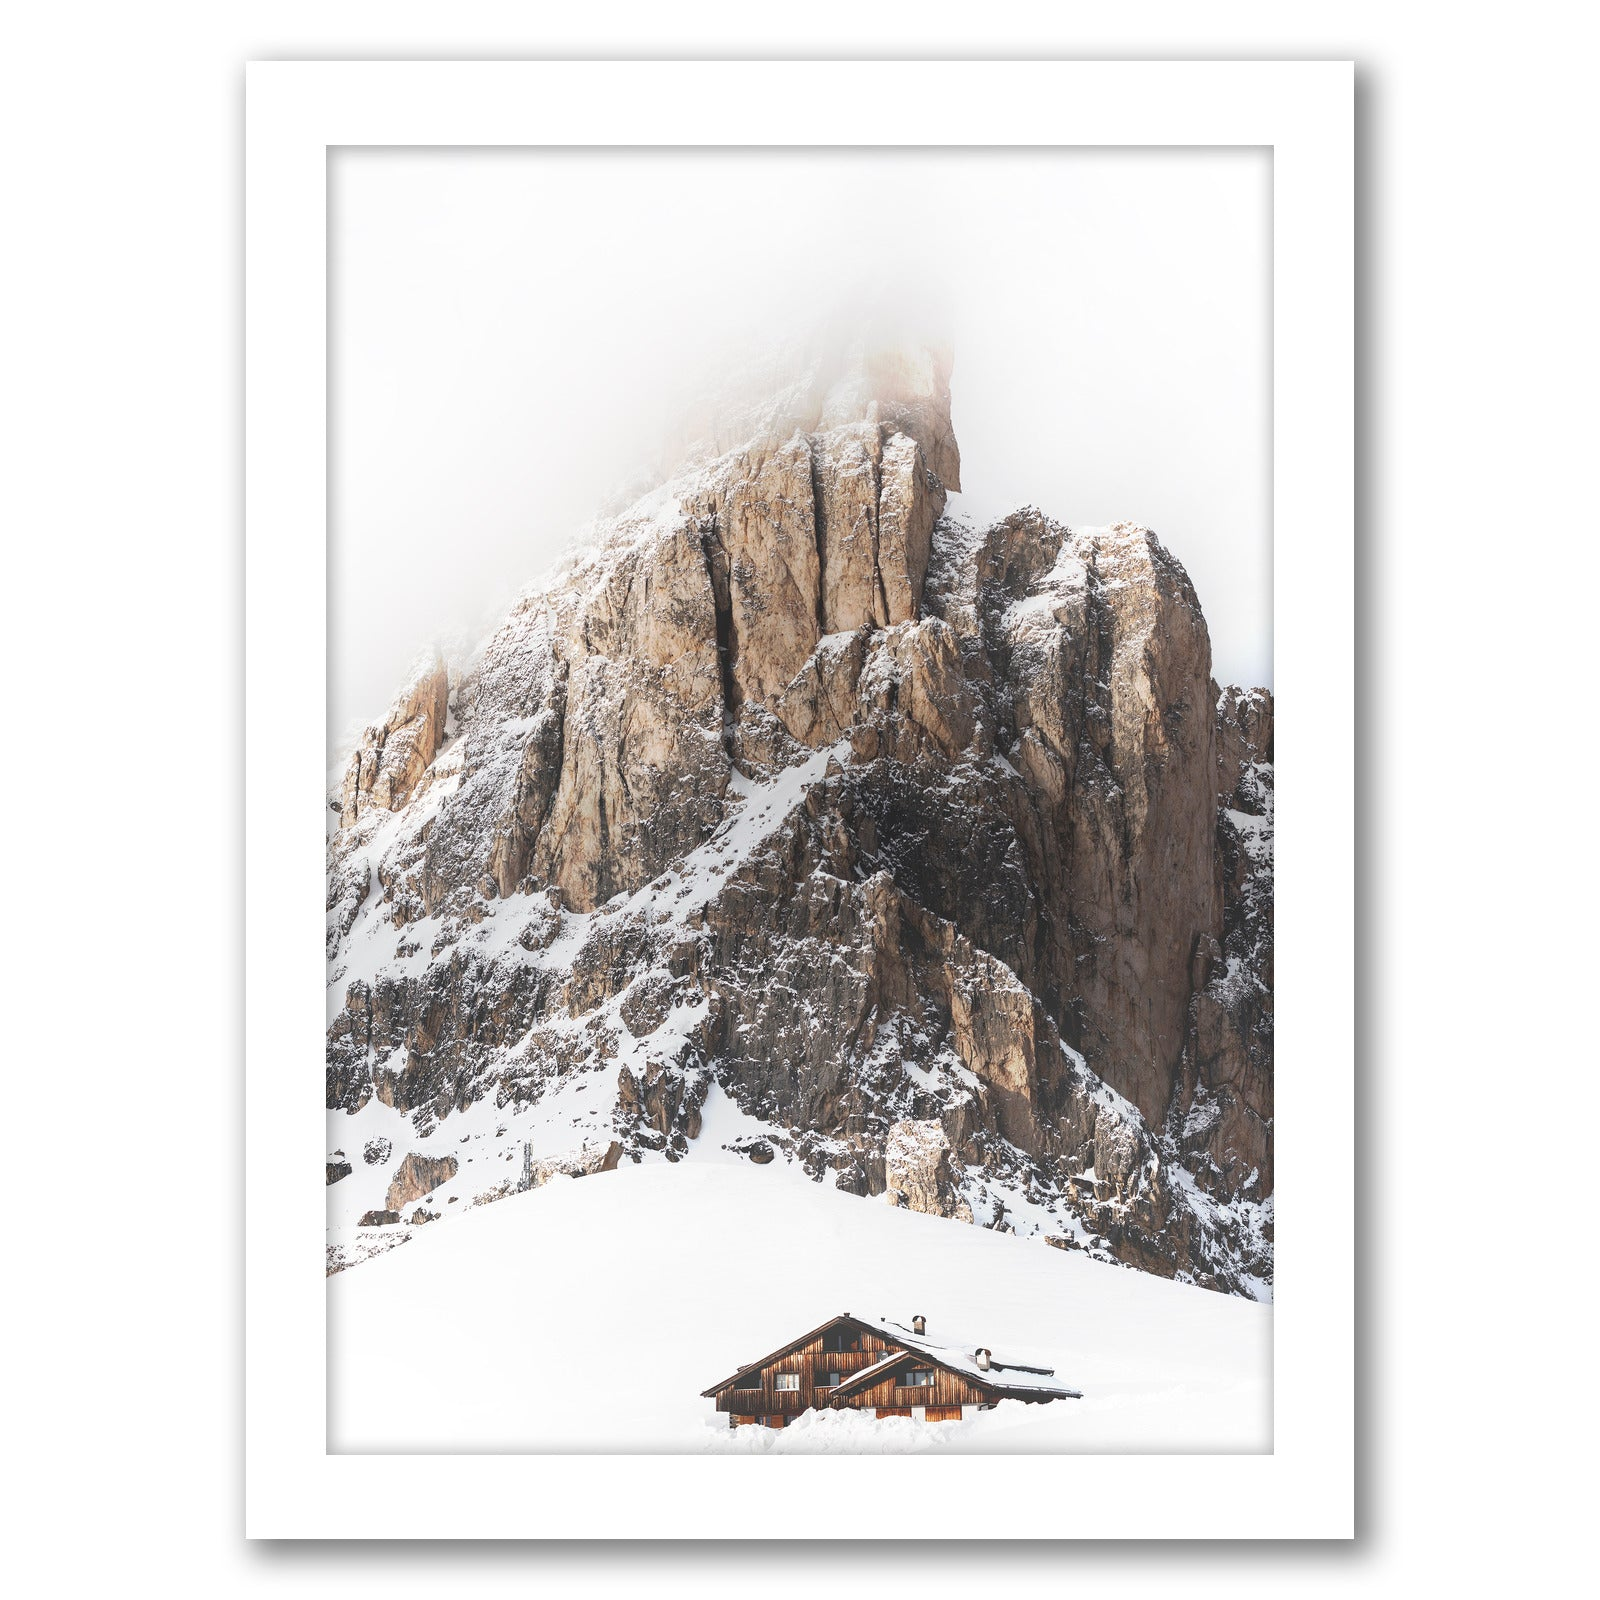 Winter Holidays In Mountains by Tanya Shumkina - White Framed Print - Wall Art - Americanflat